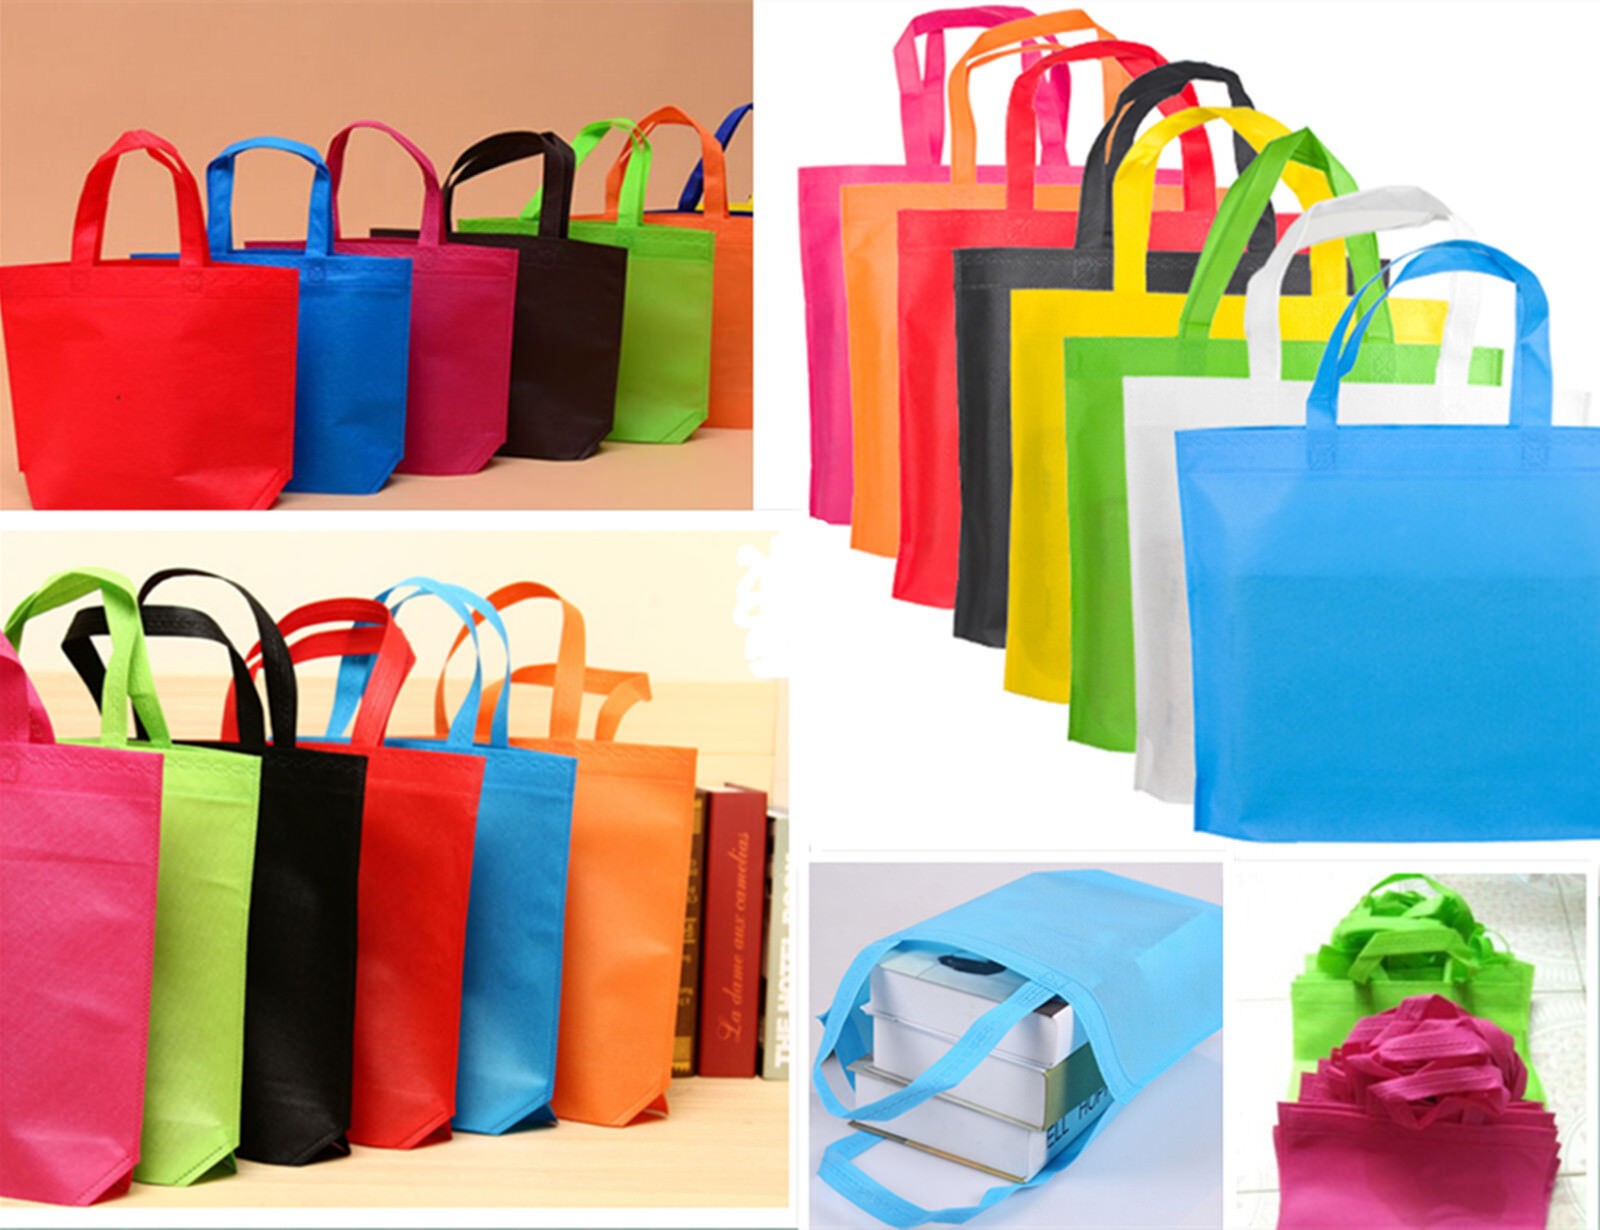 Folding Non Woven Eco Shopping Bag Storage Grocery Reusable Tote Wholesale  AAAAA 1 Of 5FREE Shipping See More